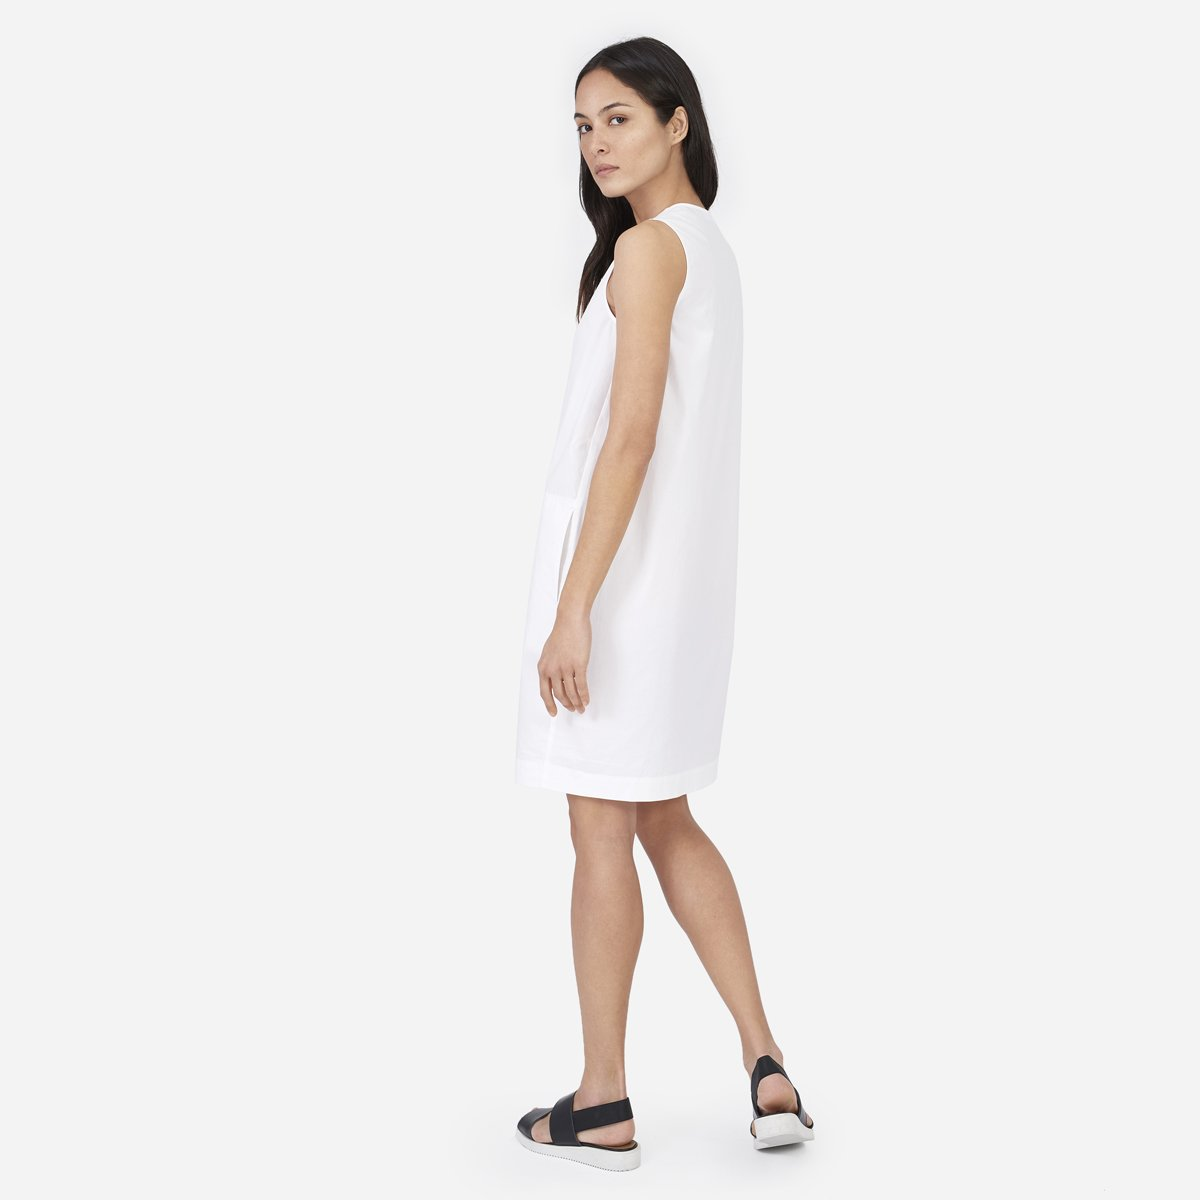 6211ff6355 Your browser does not support HTML5 video. Here is the link to the video W Poplin  V Neck Dress white.